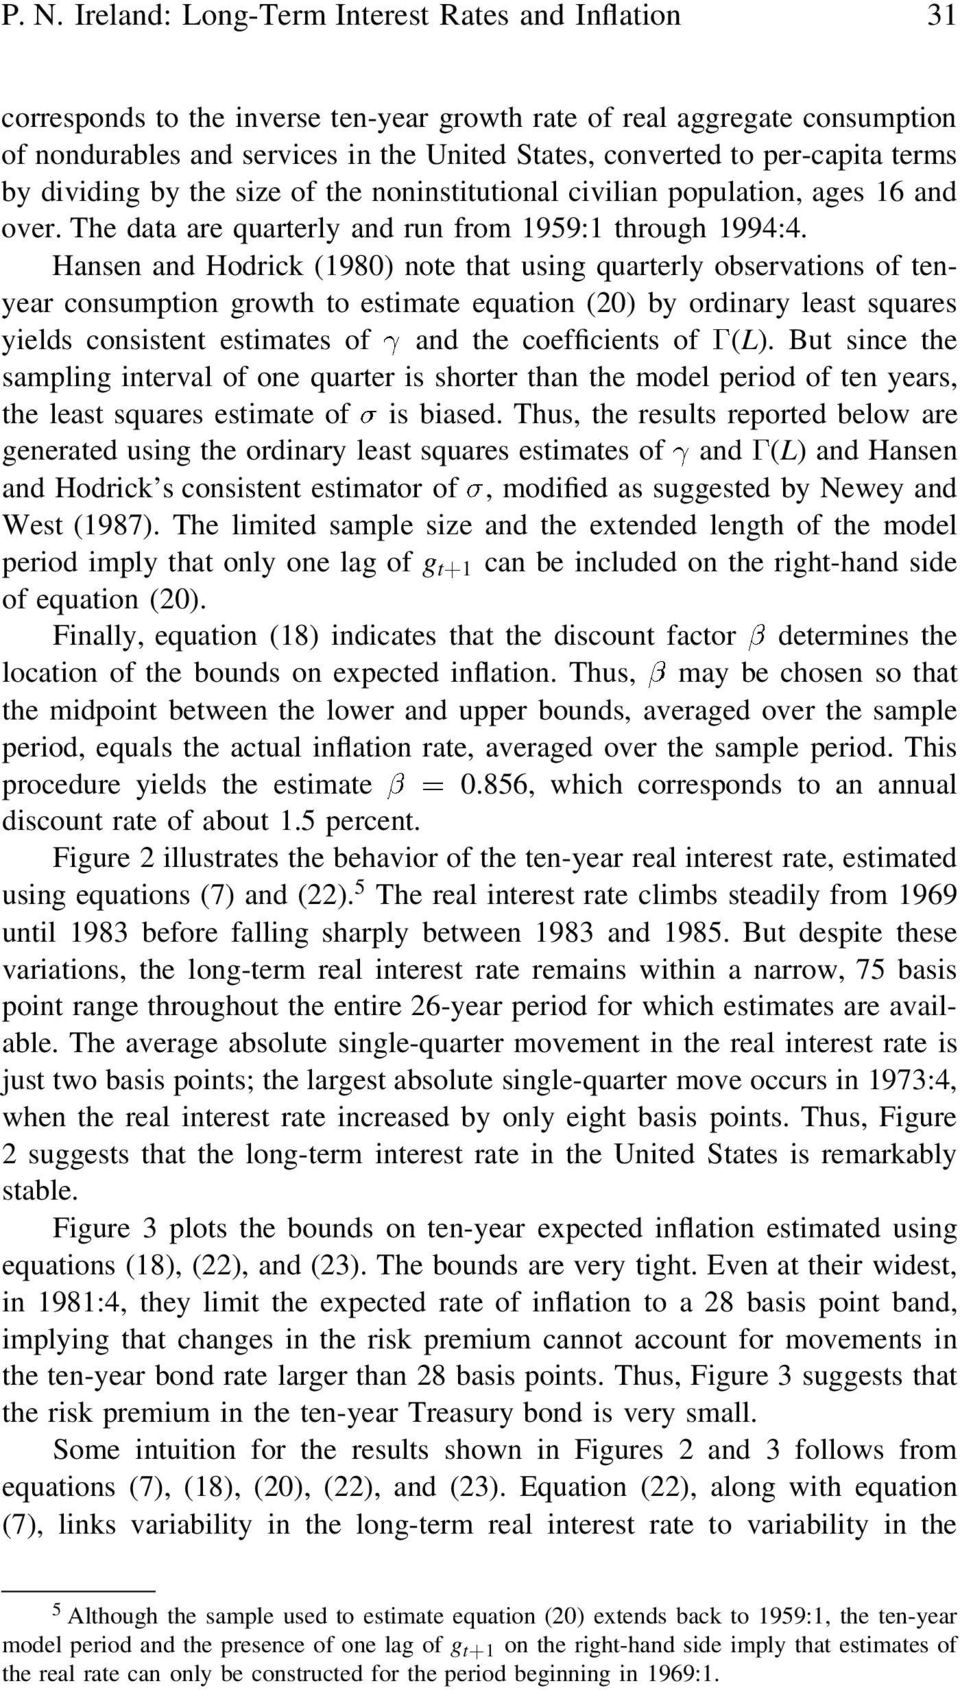 Hansen and Hodrick (1980) note that using quarterly observations of tenyear consumption growth to estimate equation (20) by ordinary least squares yields consistent estimates of and the coefficients